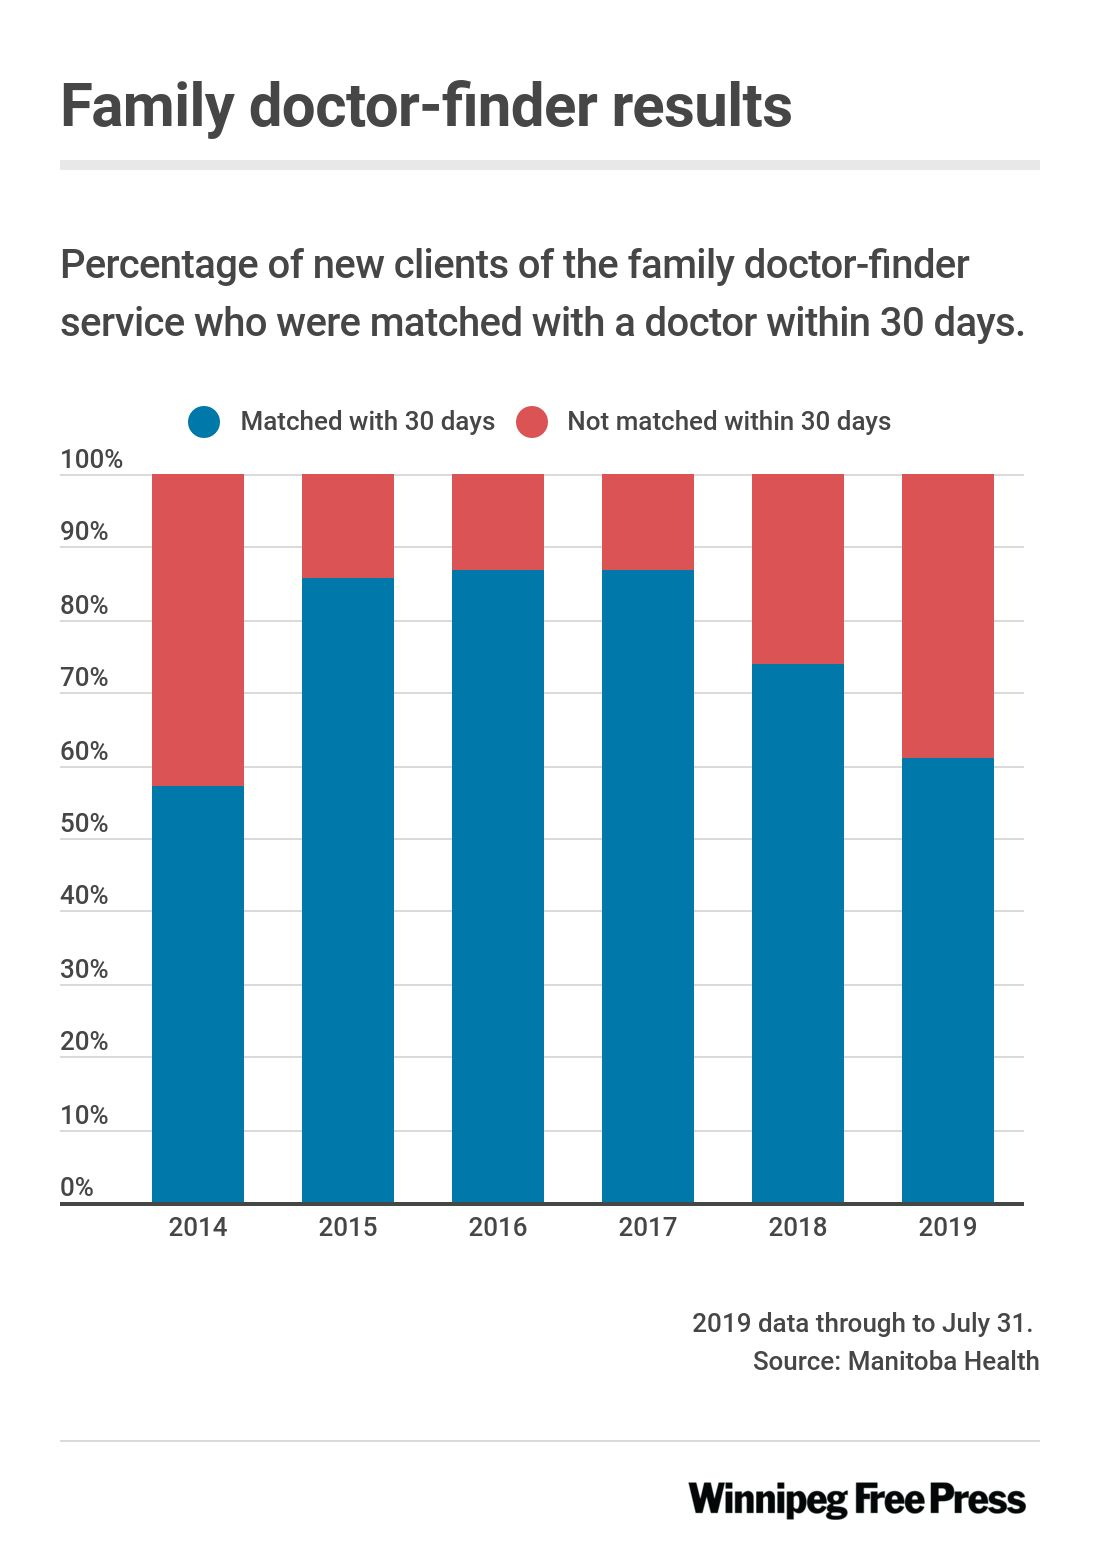 Graphic showing percentage of new clients of the family doctor finder service who were matched within 30 days